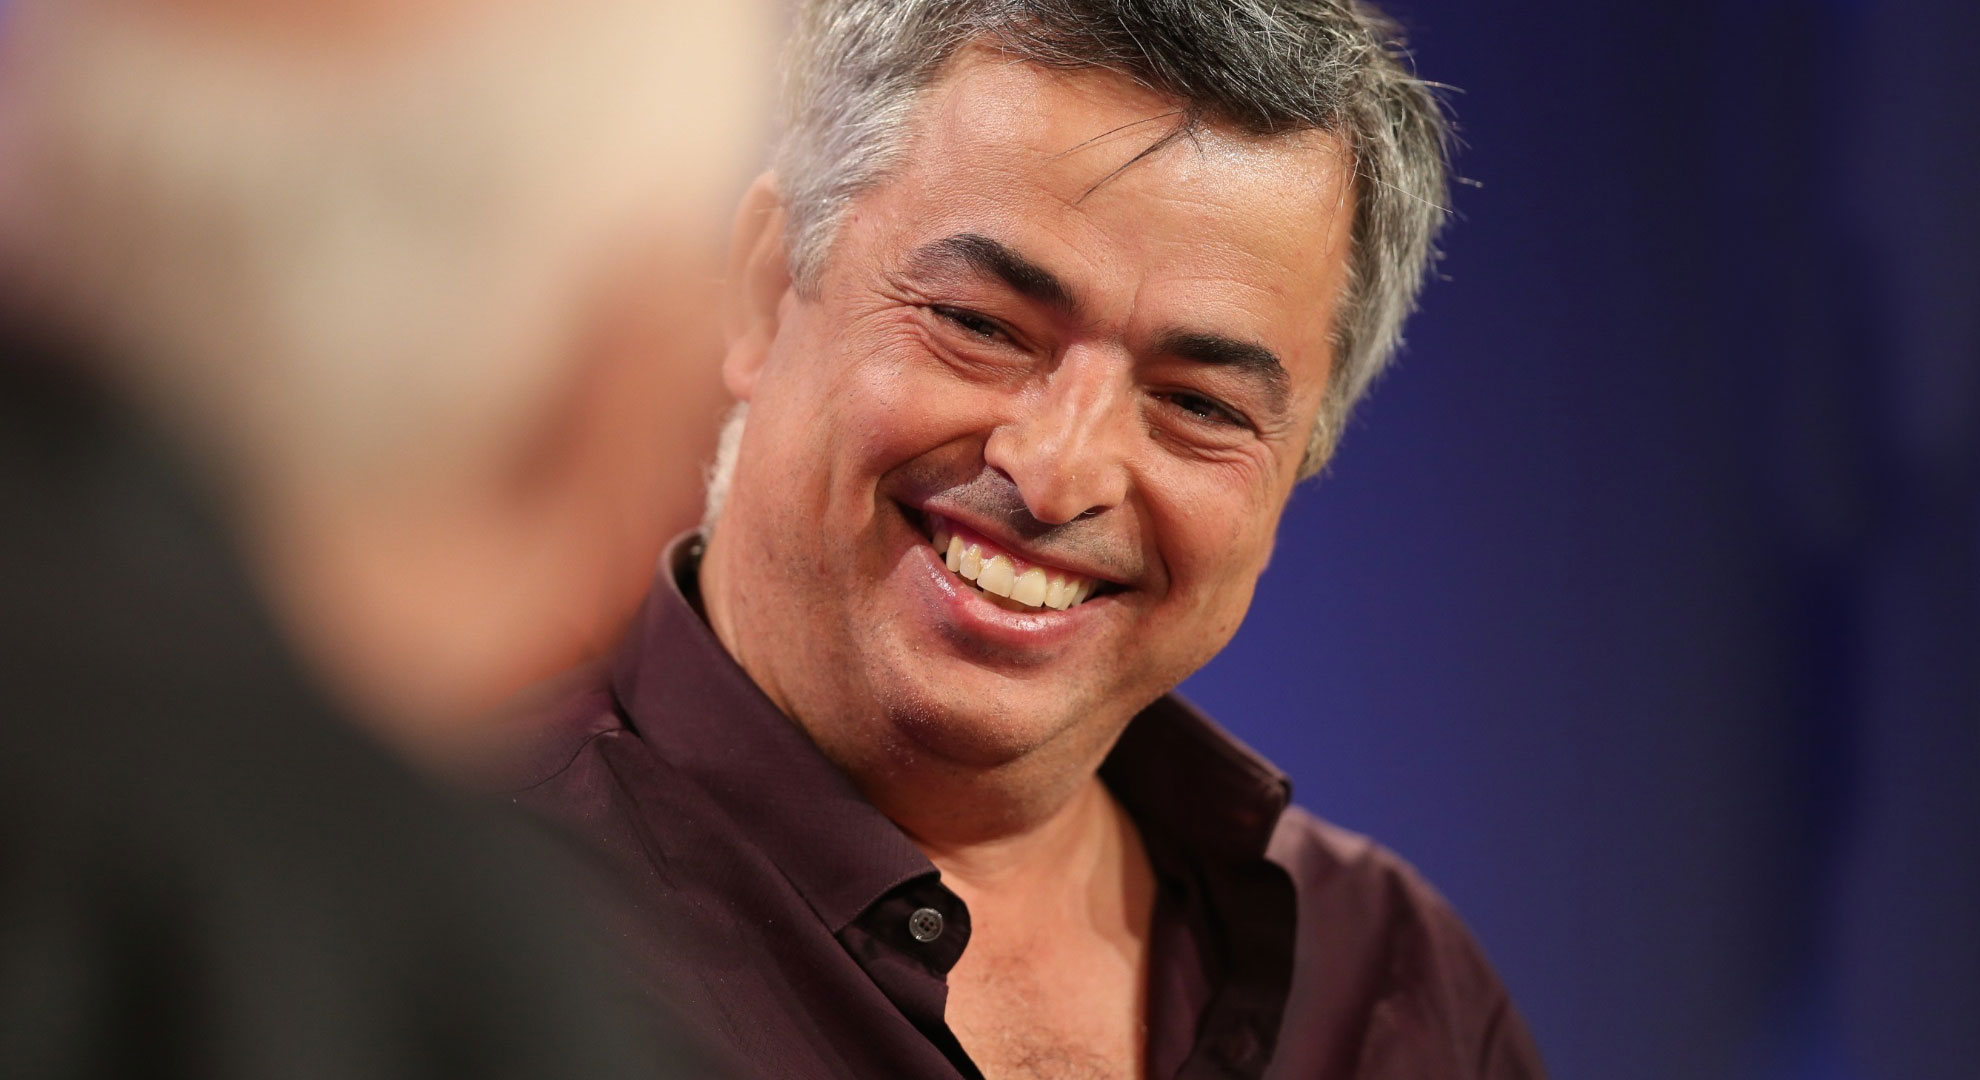 Photo of Eddy Cue Enthuses About New Apple TV in CNN Interview